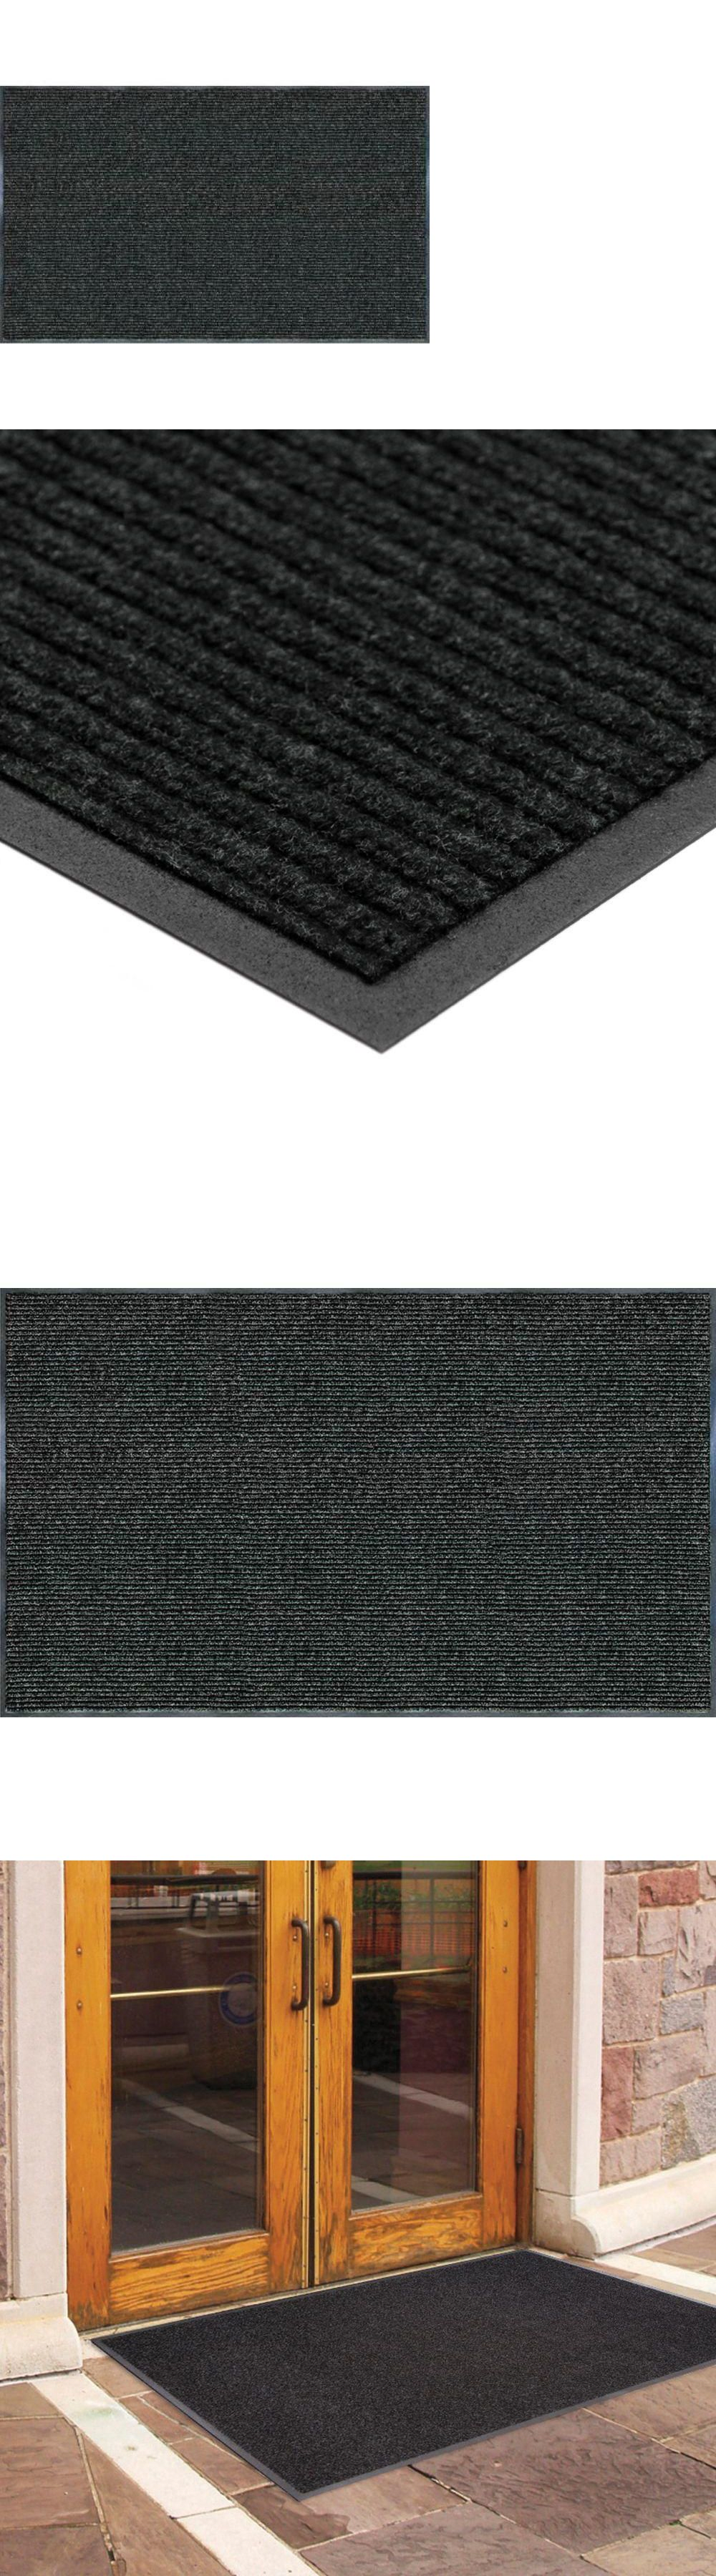 Commercial Rugs Other Rugs And Carpets 8409 60 X 36 Outdoor Floor Mat Commercial